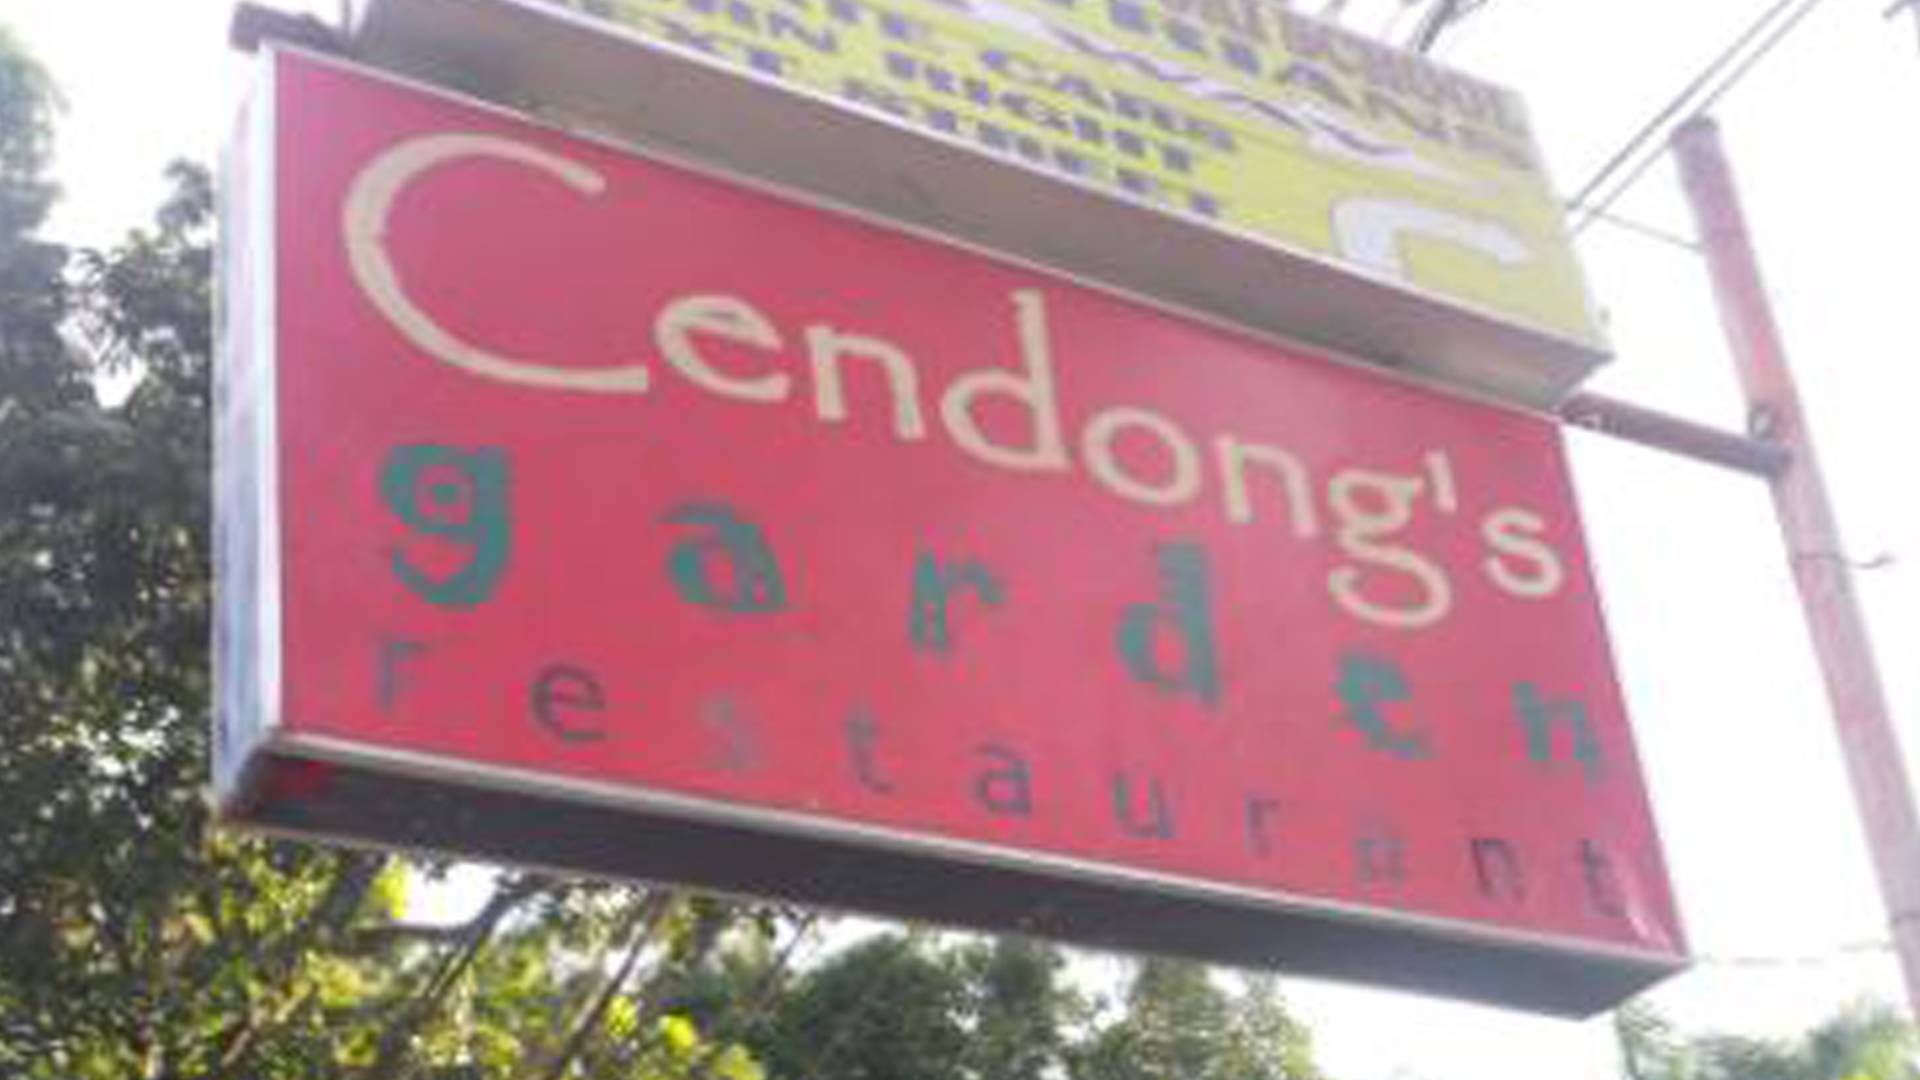 Cendong's: Our Home of the Last One Case… or Two